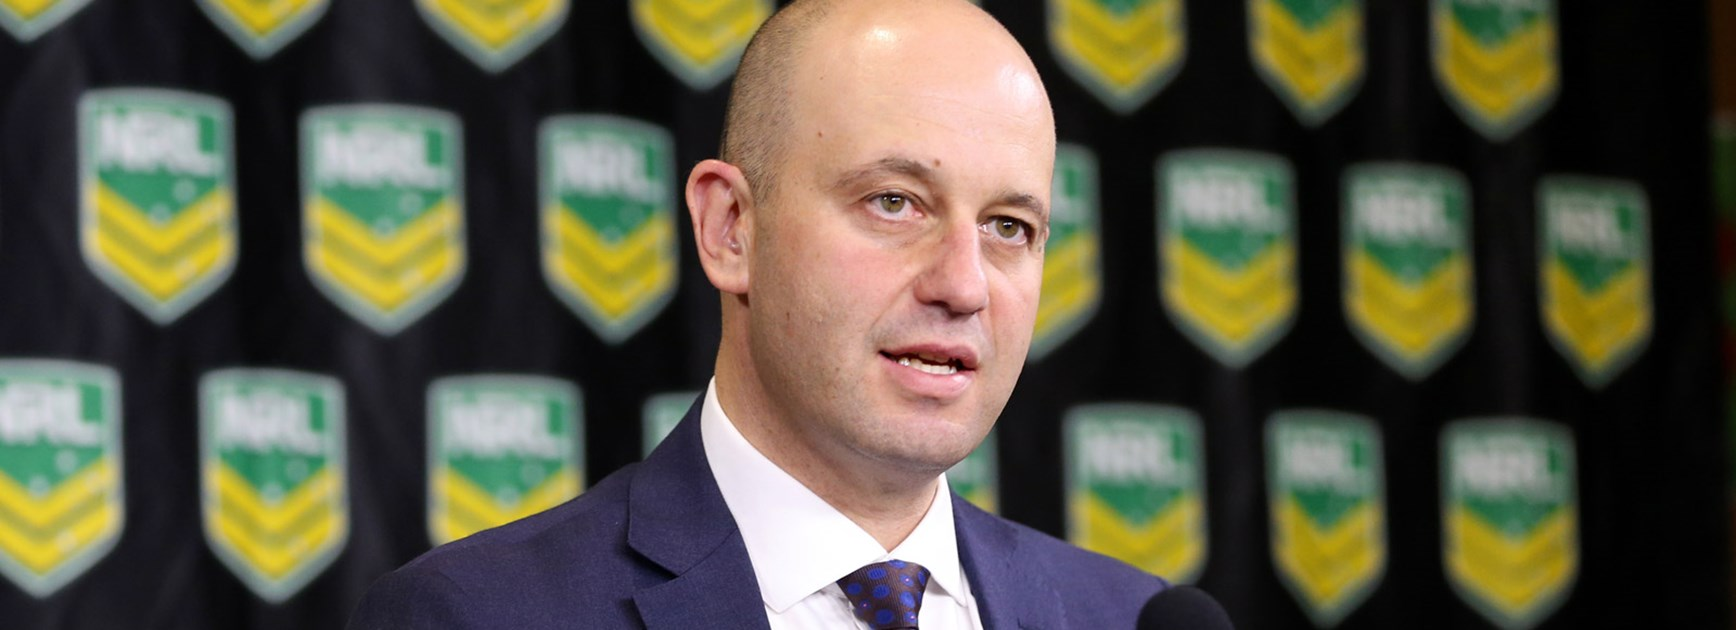 NRL CEO Todd Greenberg at the announcement of the preliminary findings of the Eels salary cap investigation.